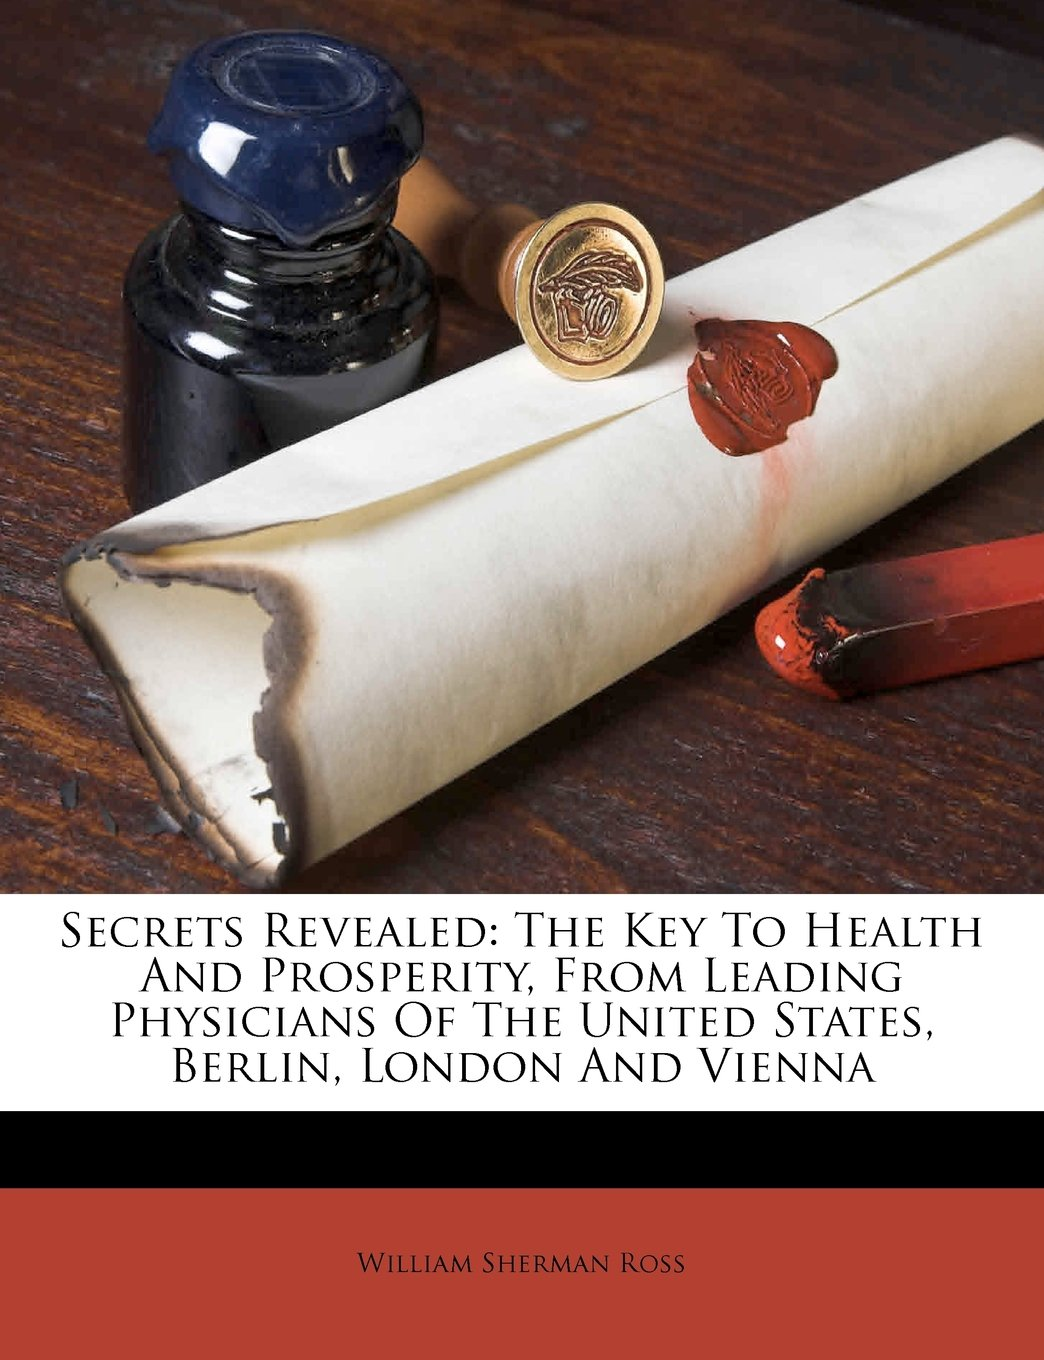 Secrets Revealed: The Key To Health And Prosperity, From Leading Physicians Of The United States, Berlin, London And Vienna pdf epub